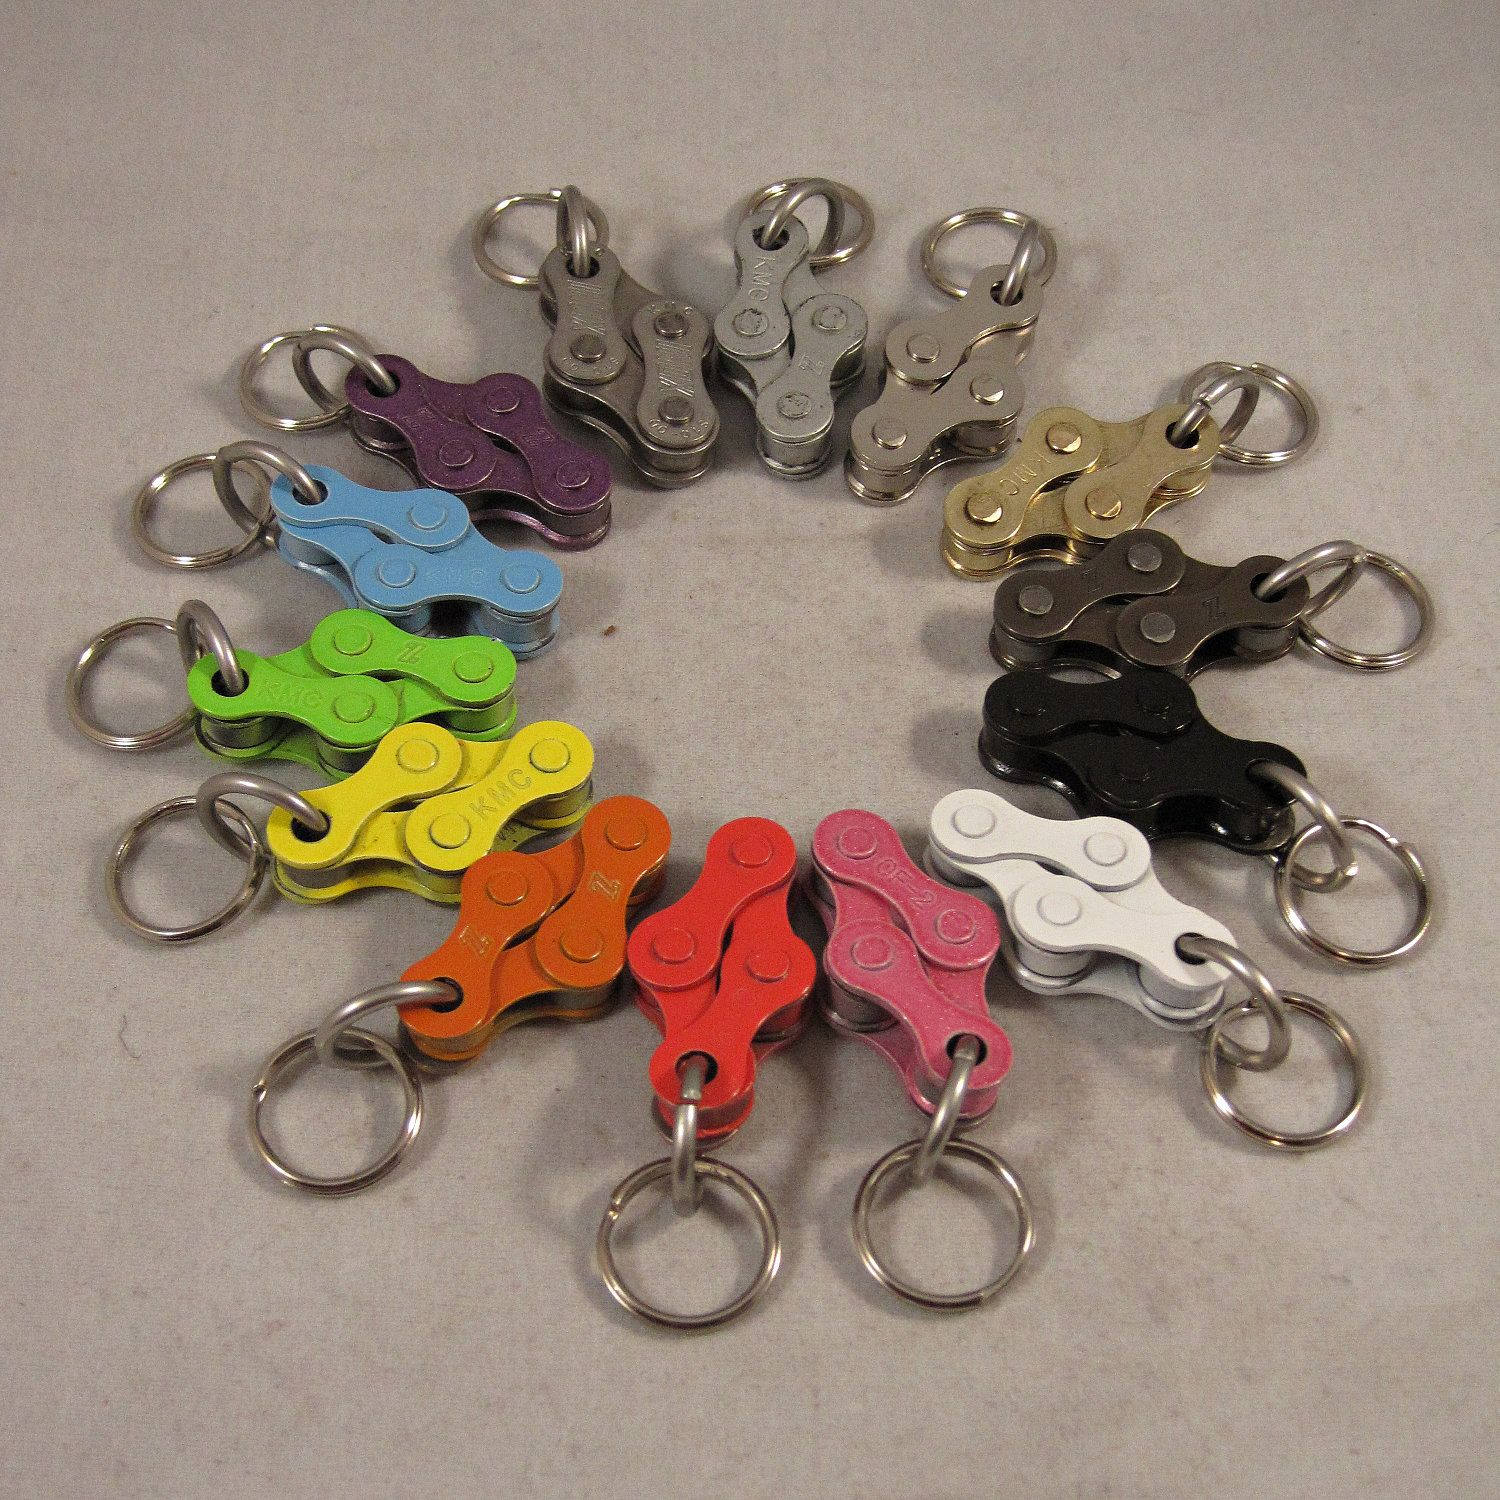 Bike Chain Key Chain 3 00 For The Cyclist In Your Life Bike